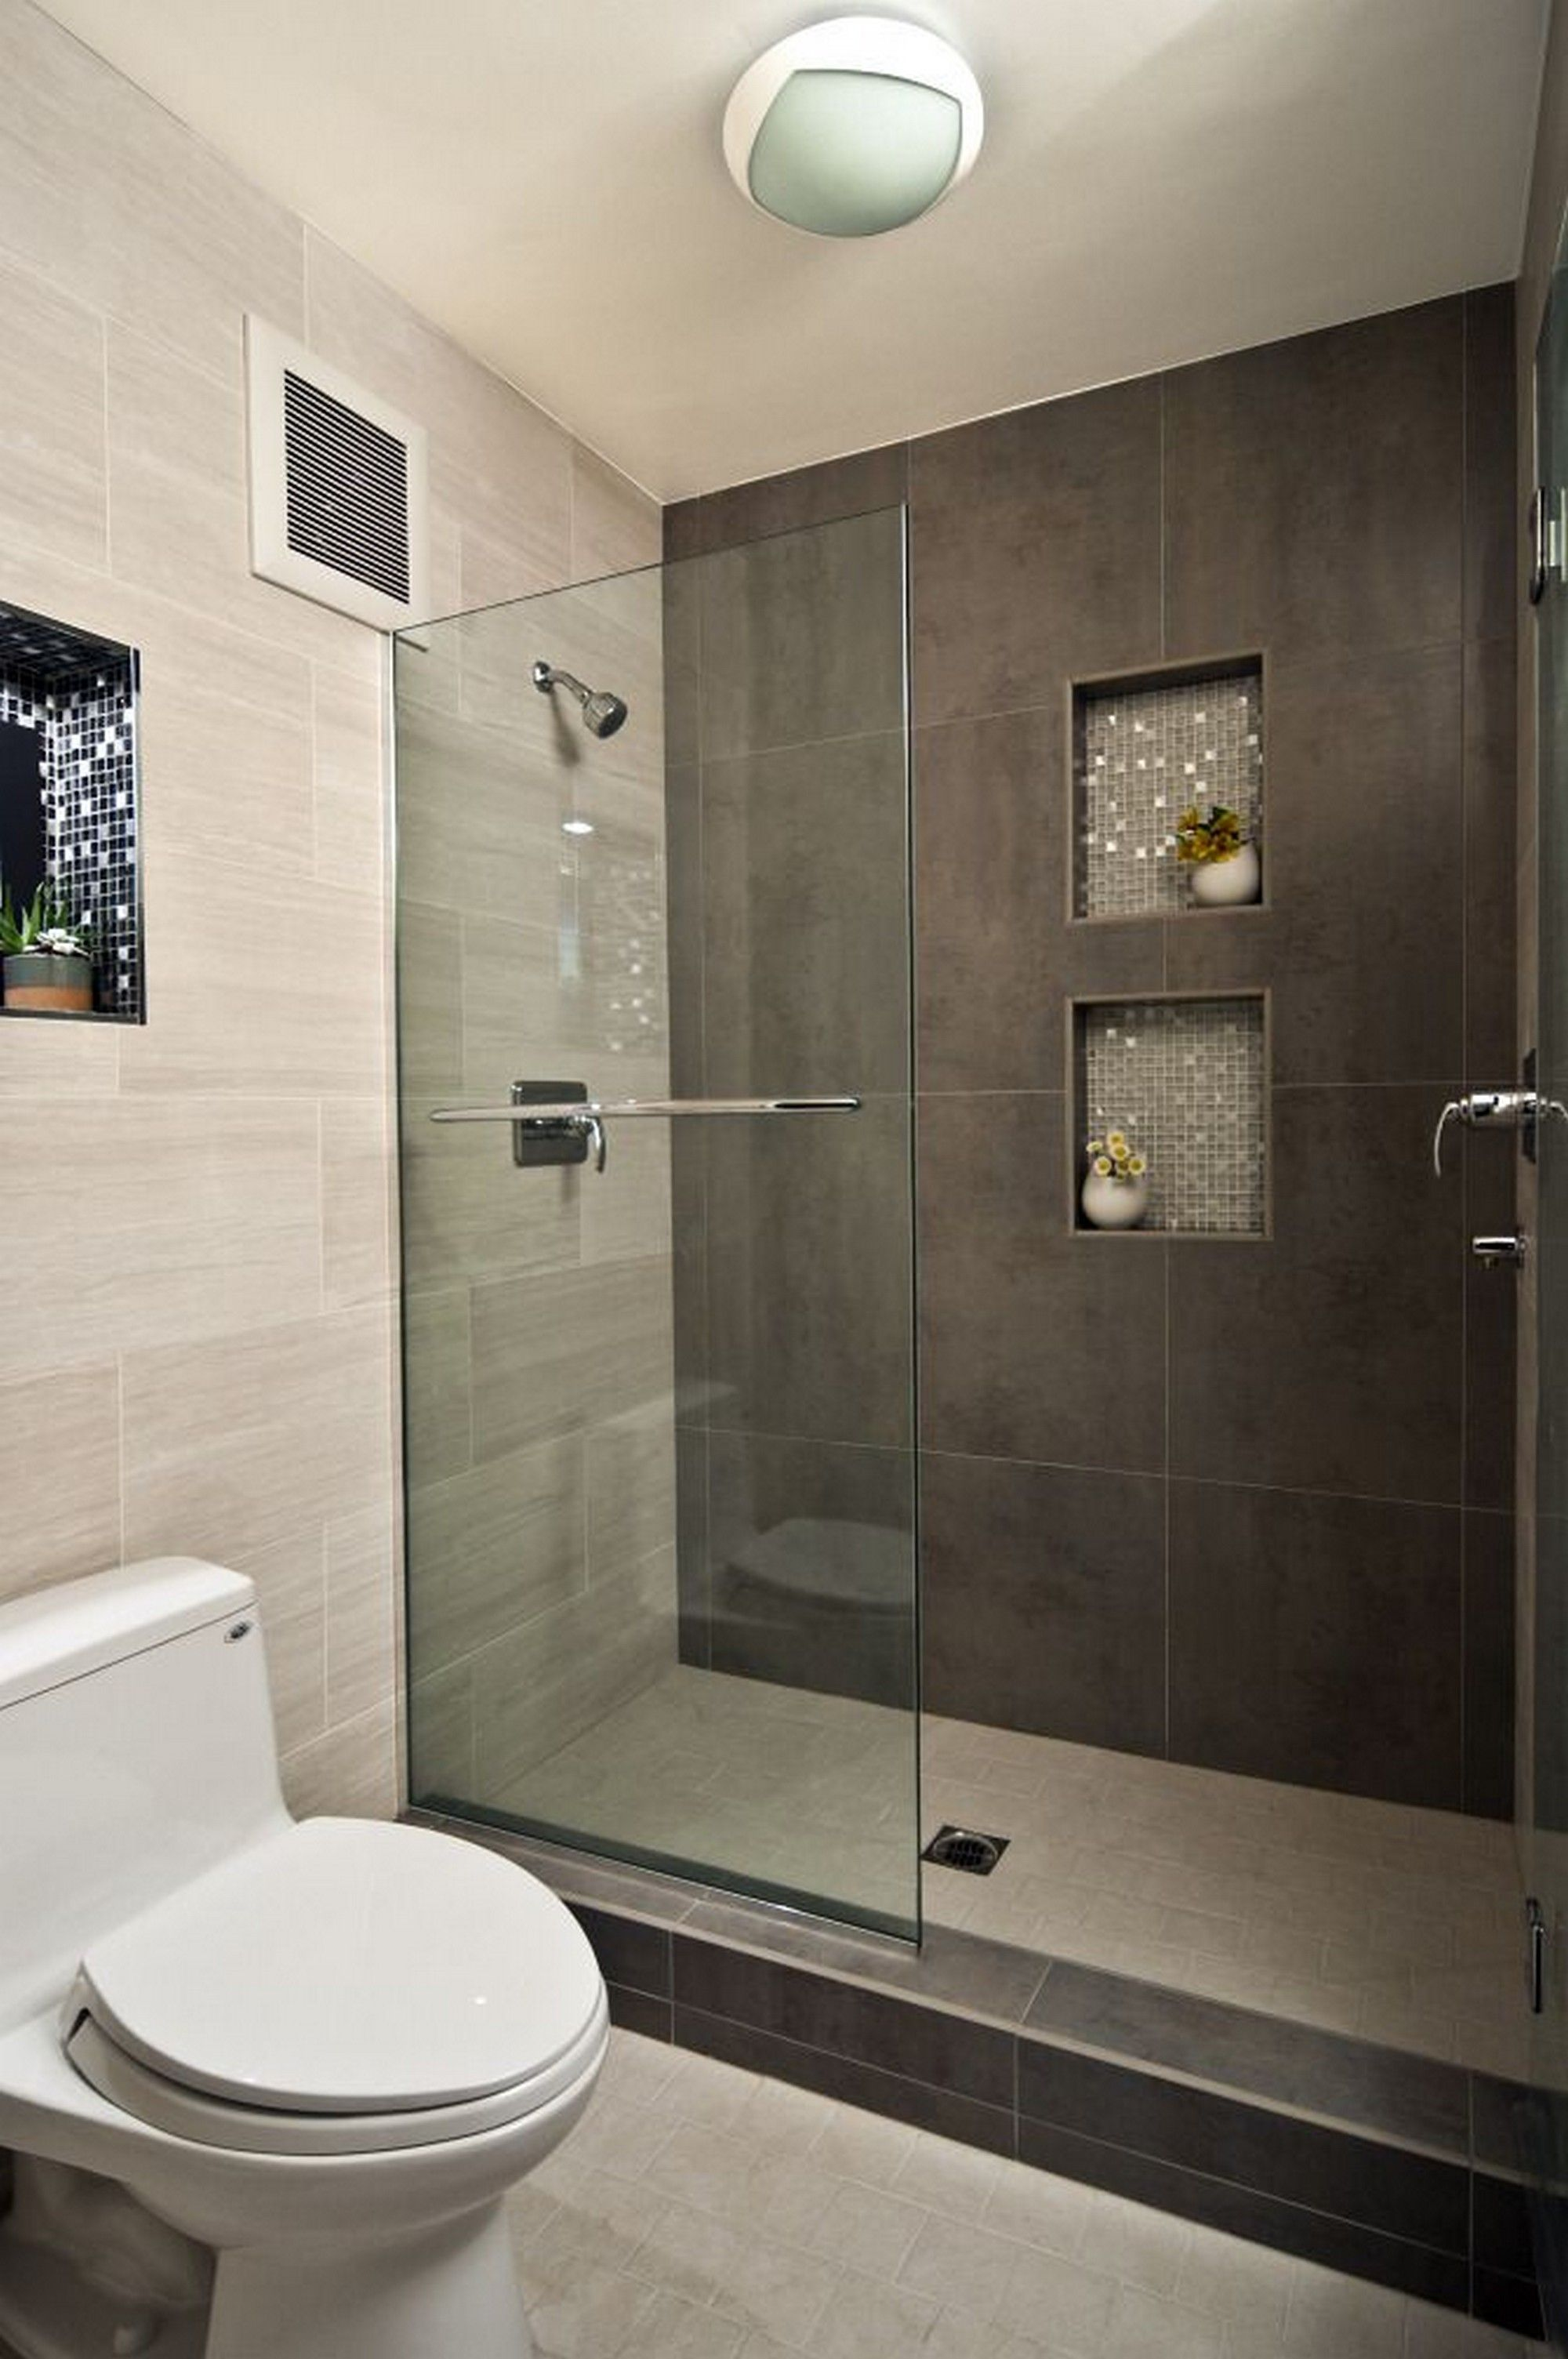 Charmant Grey White Bathroom Walk In Shower Designs Decoration Using Grey Concrete  Tile Bathroom Walls Including Clear Glass Shower Door And In Wall Grey  Mosaic Tile ...